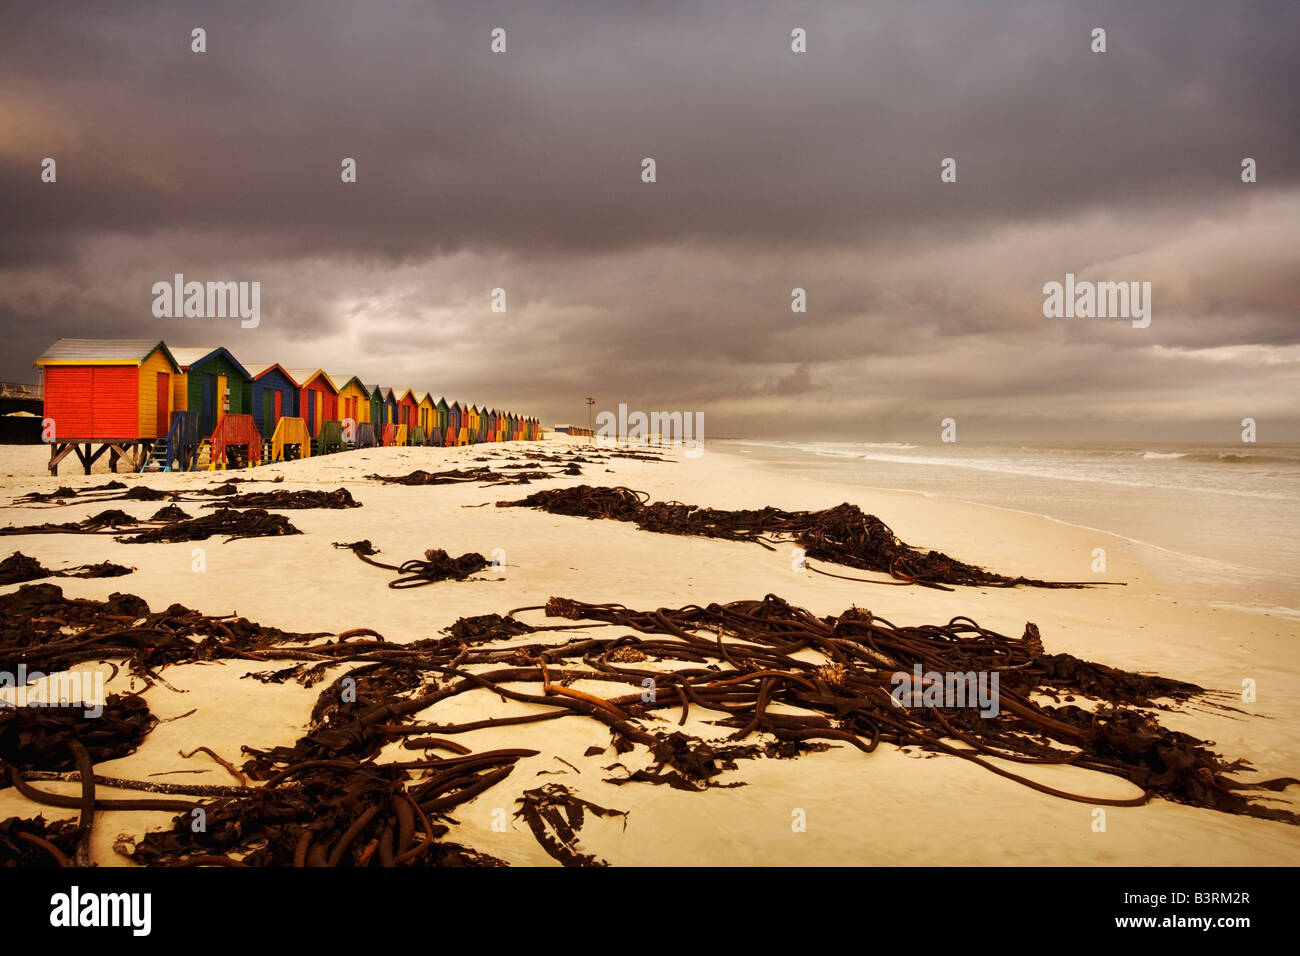 Changing huts along the beach, Cape Town, South Africa - Stock Image